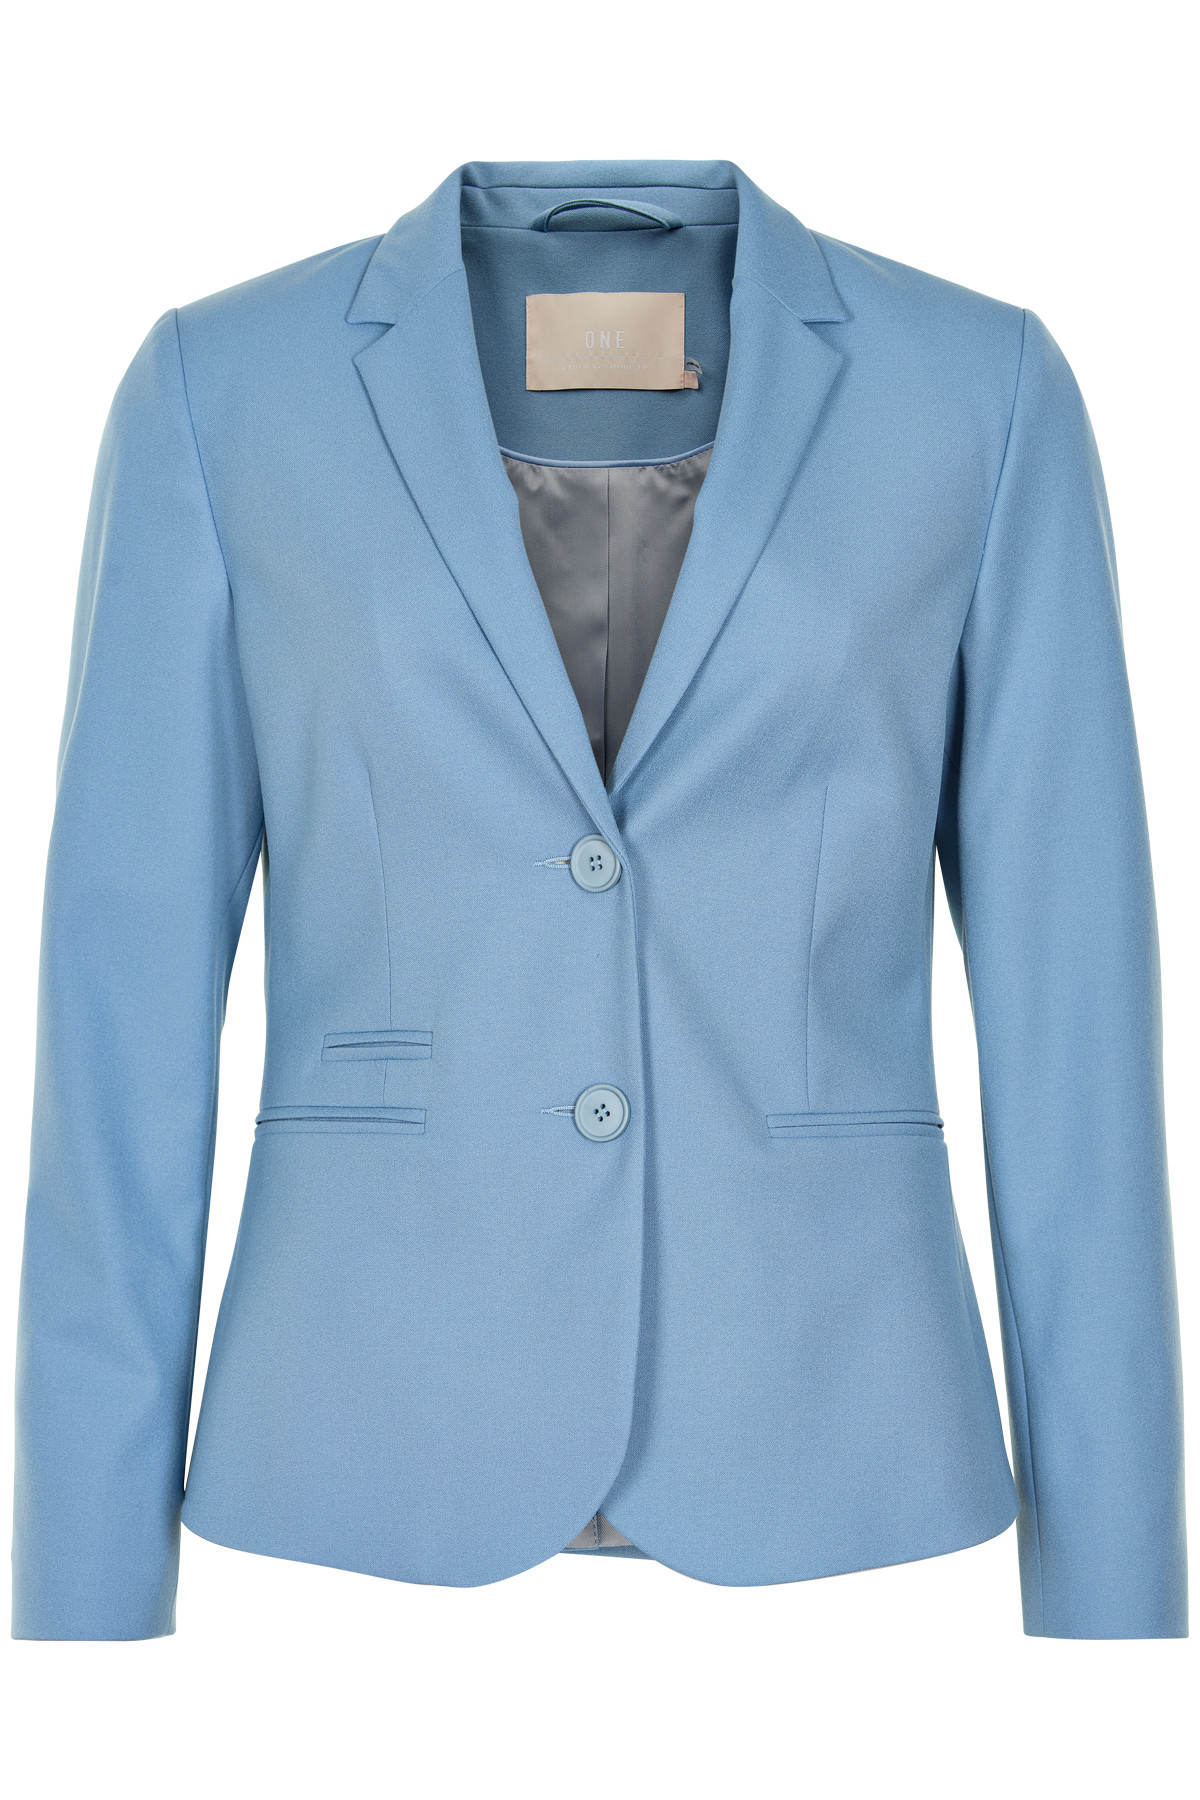 Image of   KAREN BY SIMONSEN SYDNEY BLAZER 10102089 (Light Denim Blue 40076, 32)